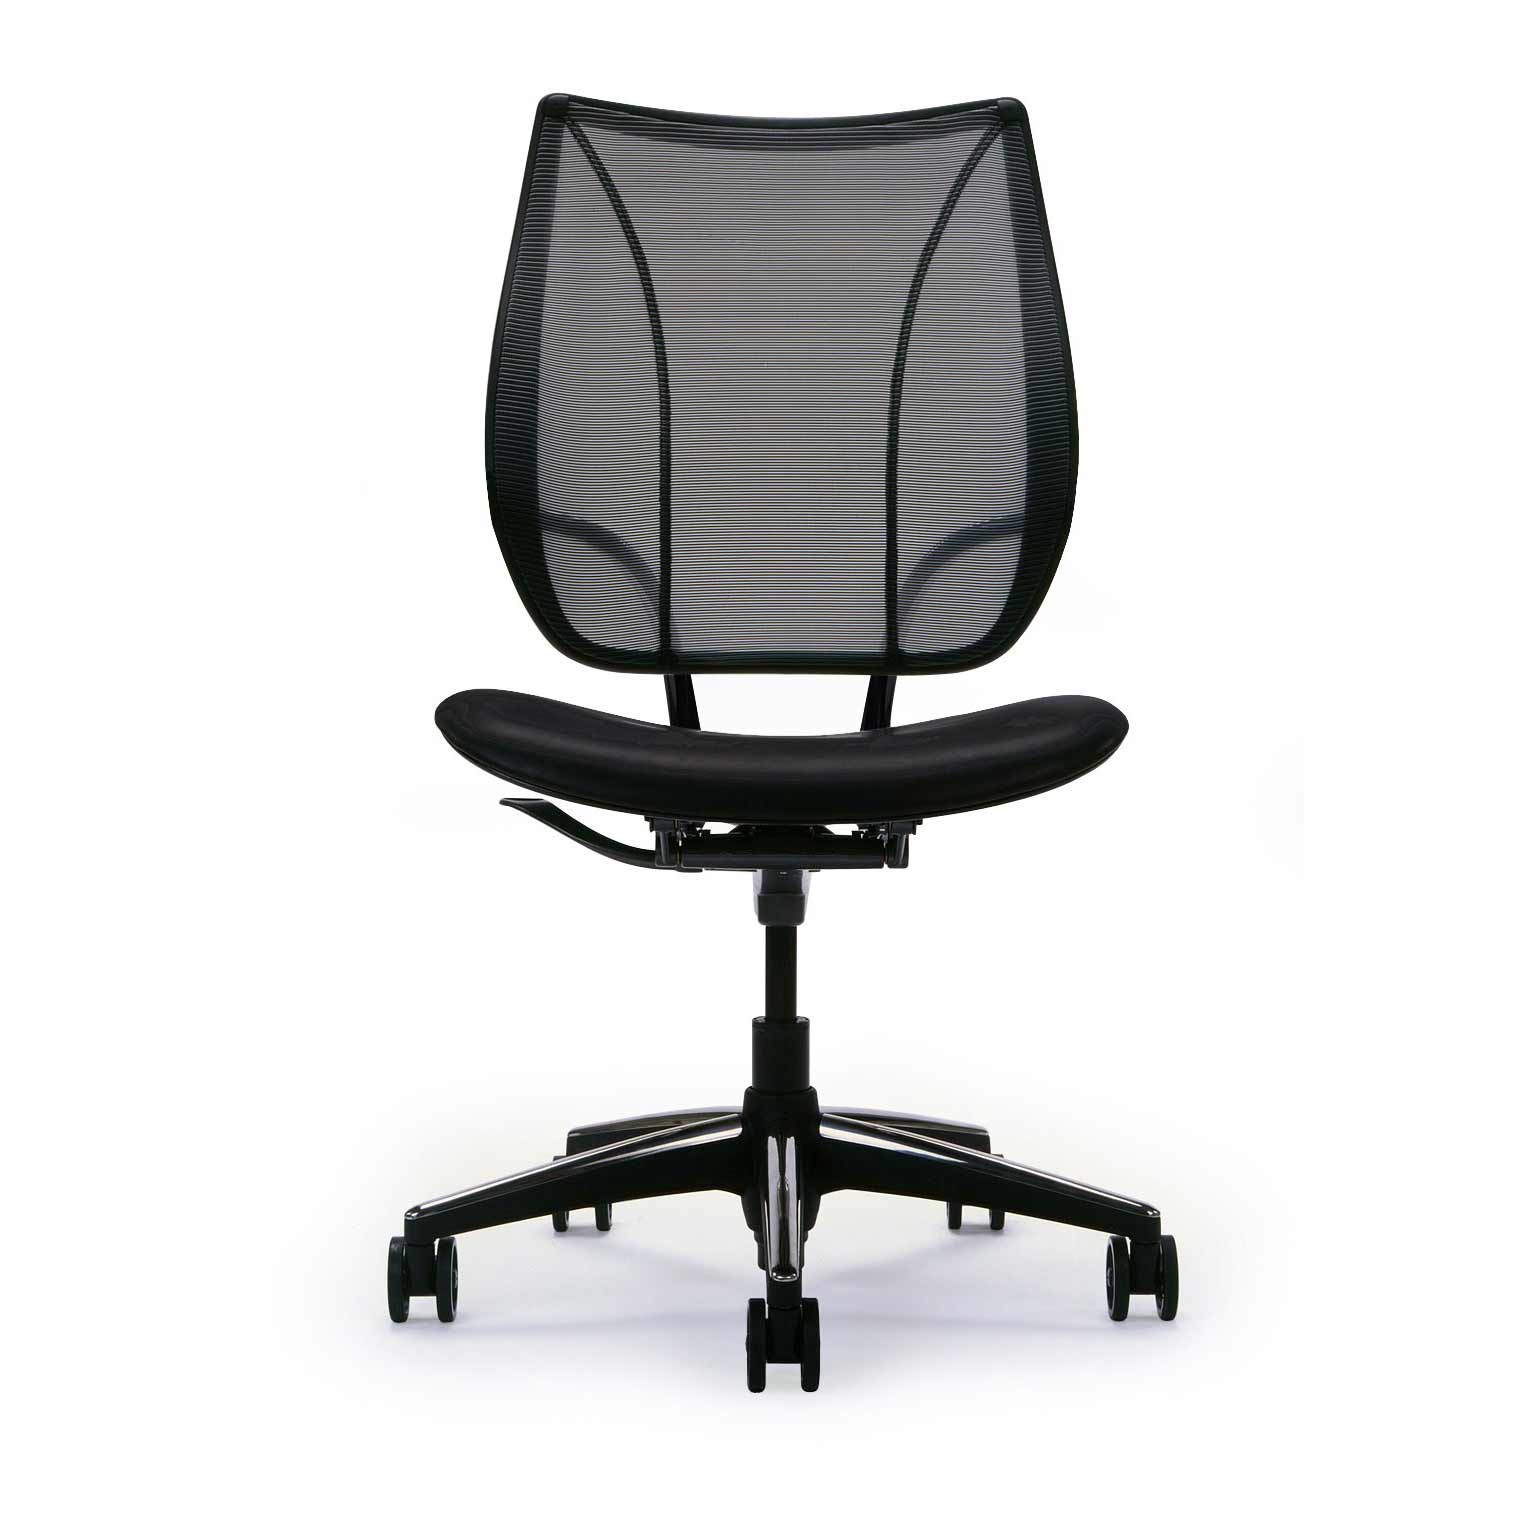 ergonomic office products for a comfortable office